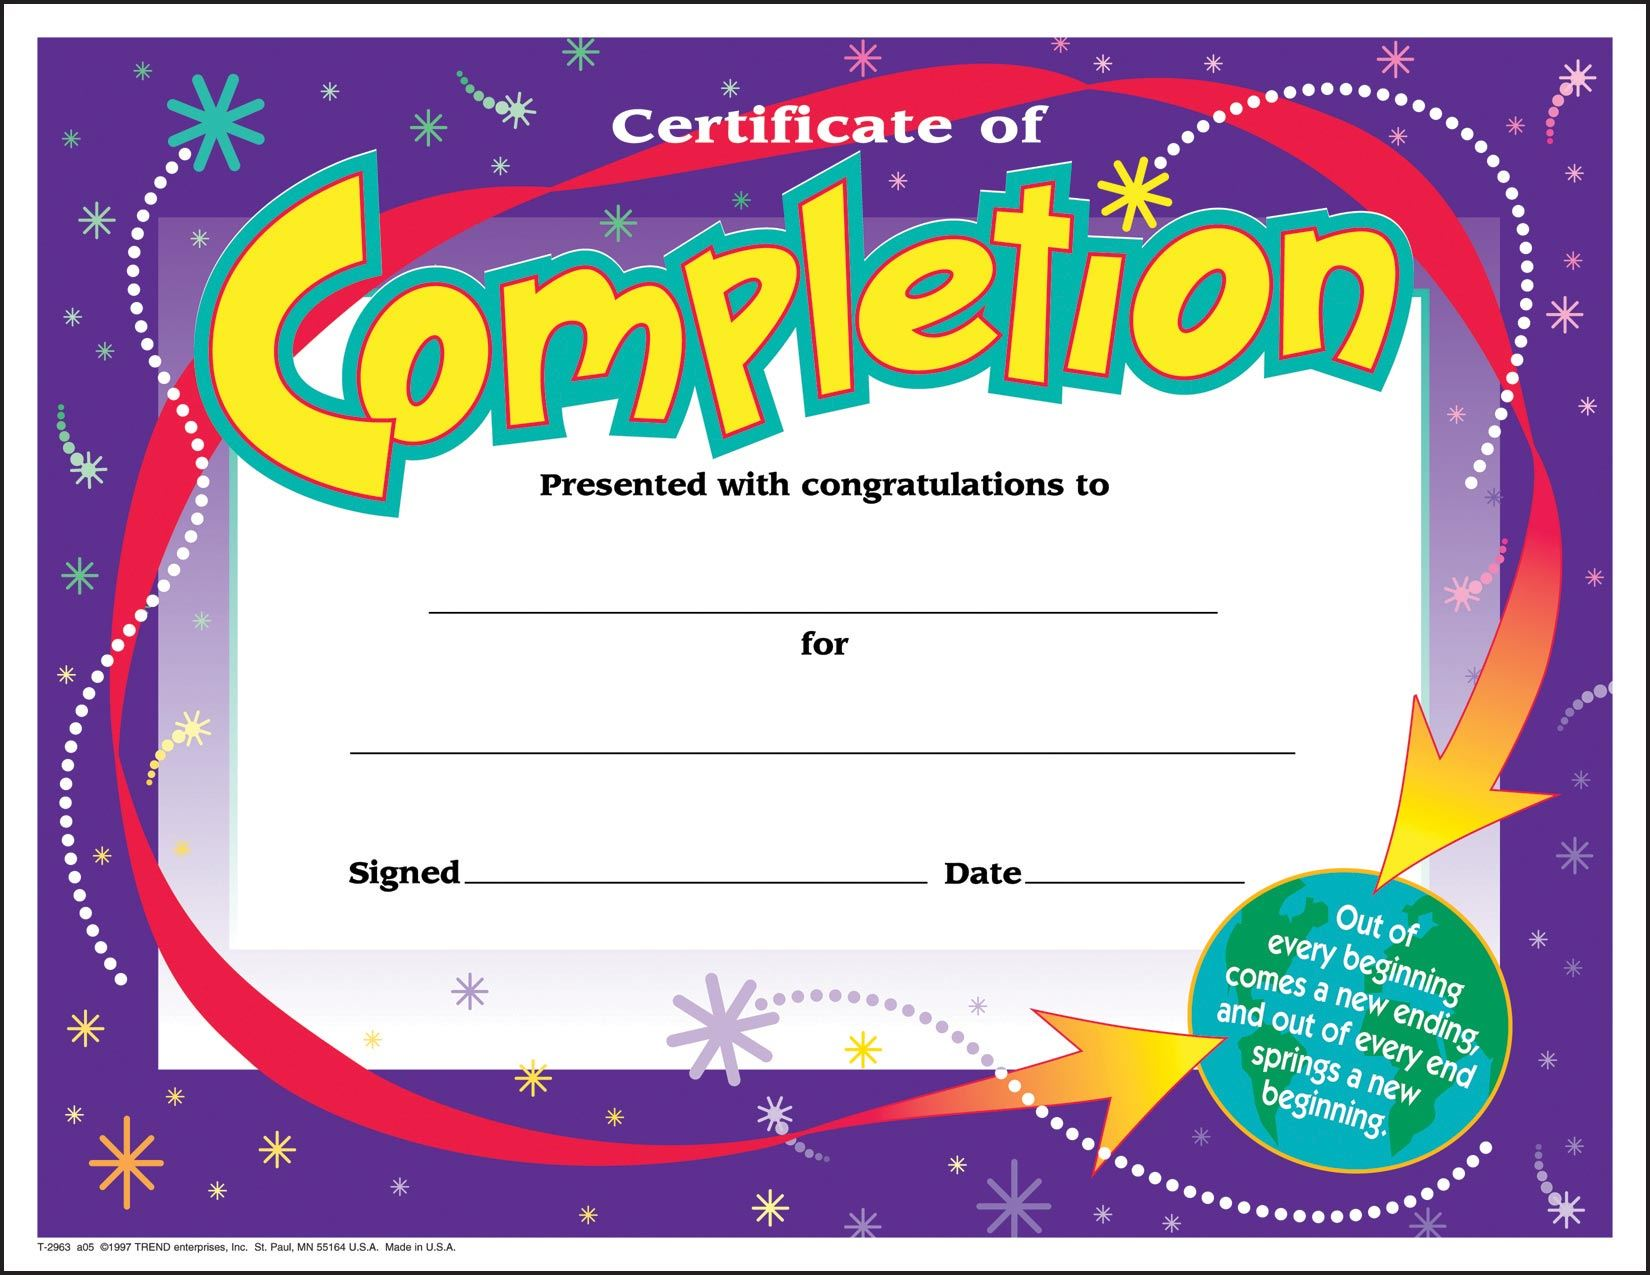 30 Certificates Of Completion Large Certificate Award Pack By